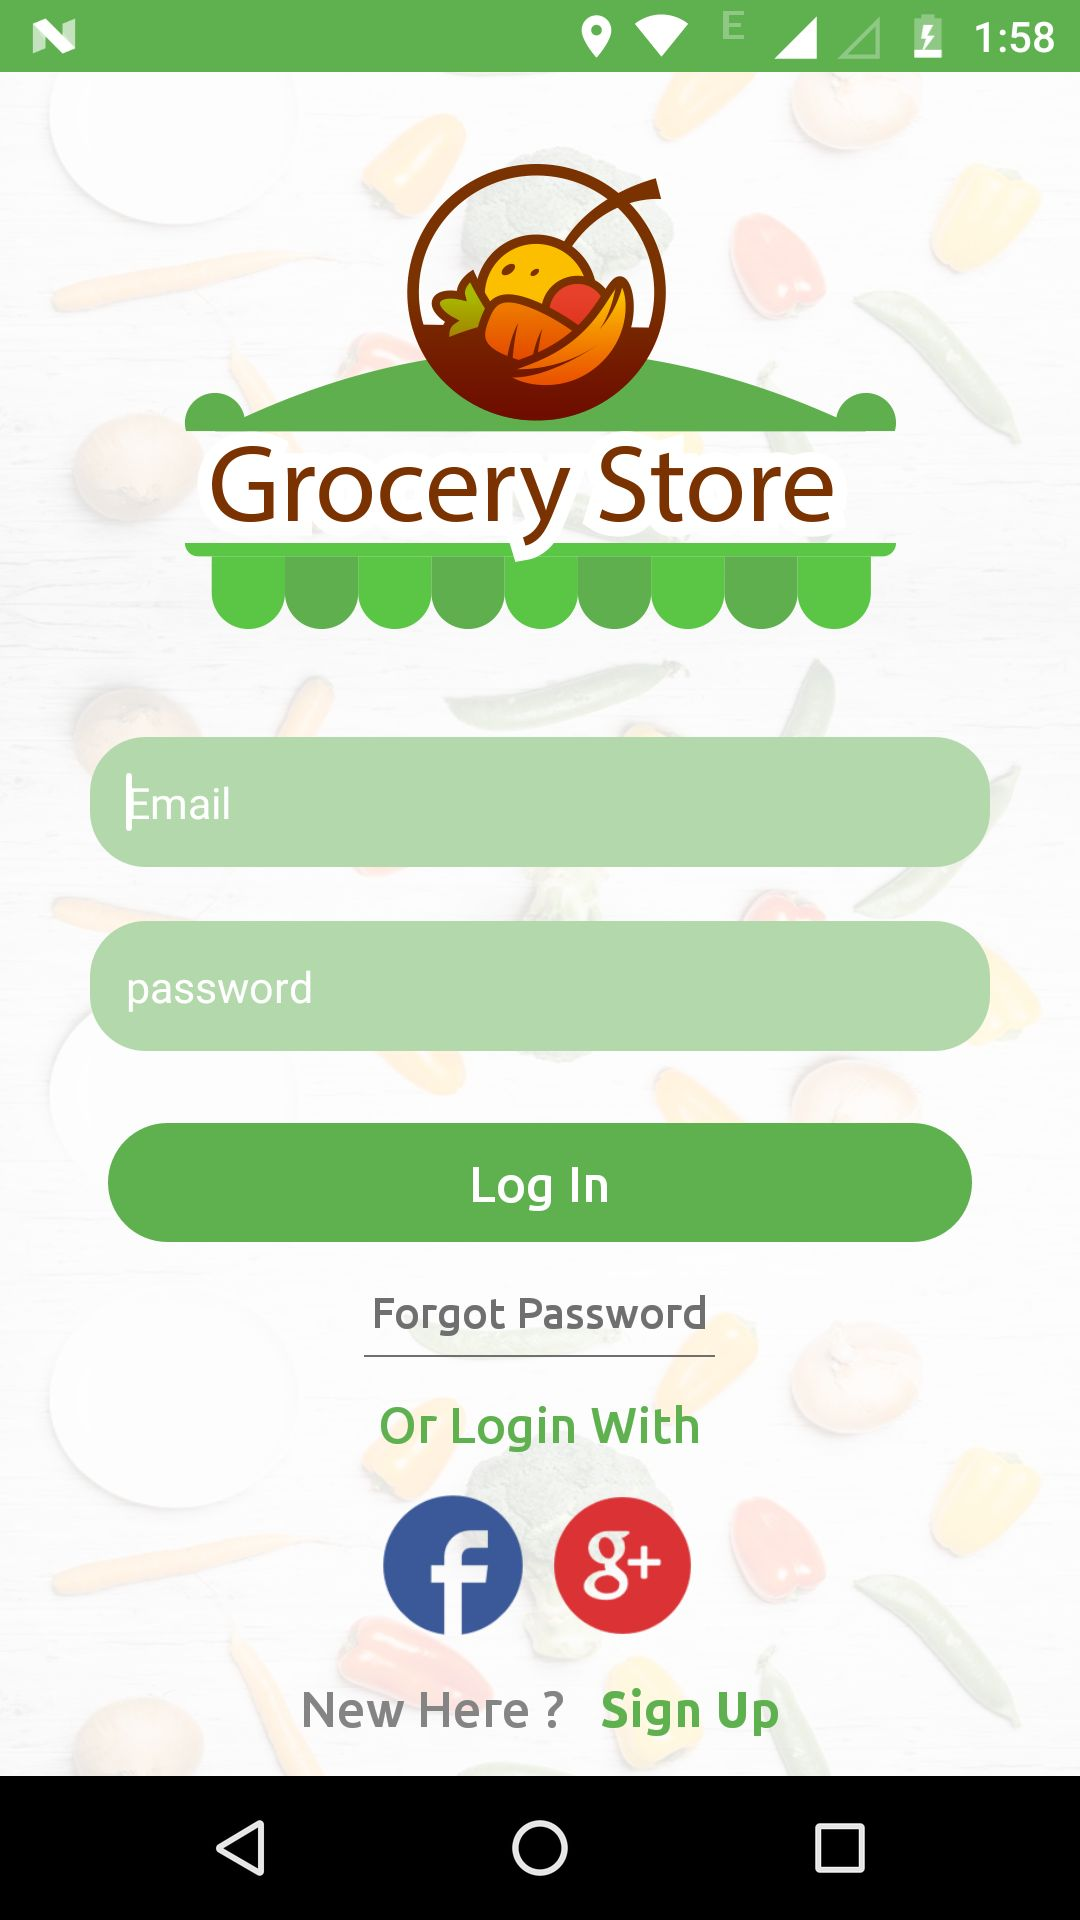 Grocery App UI Template Screenshot 14